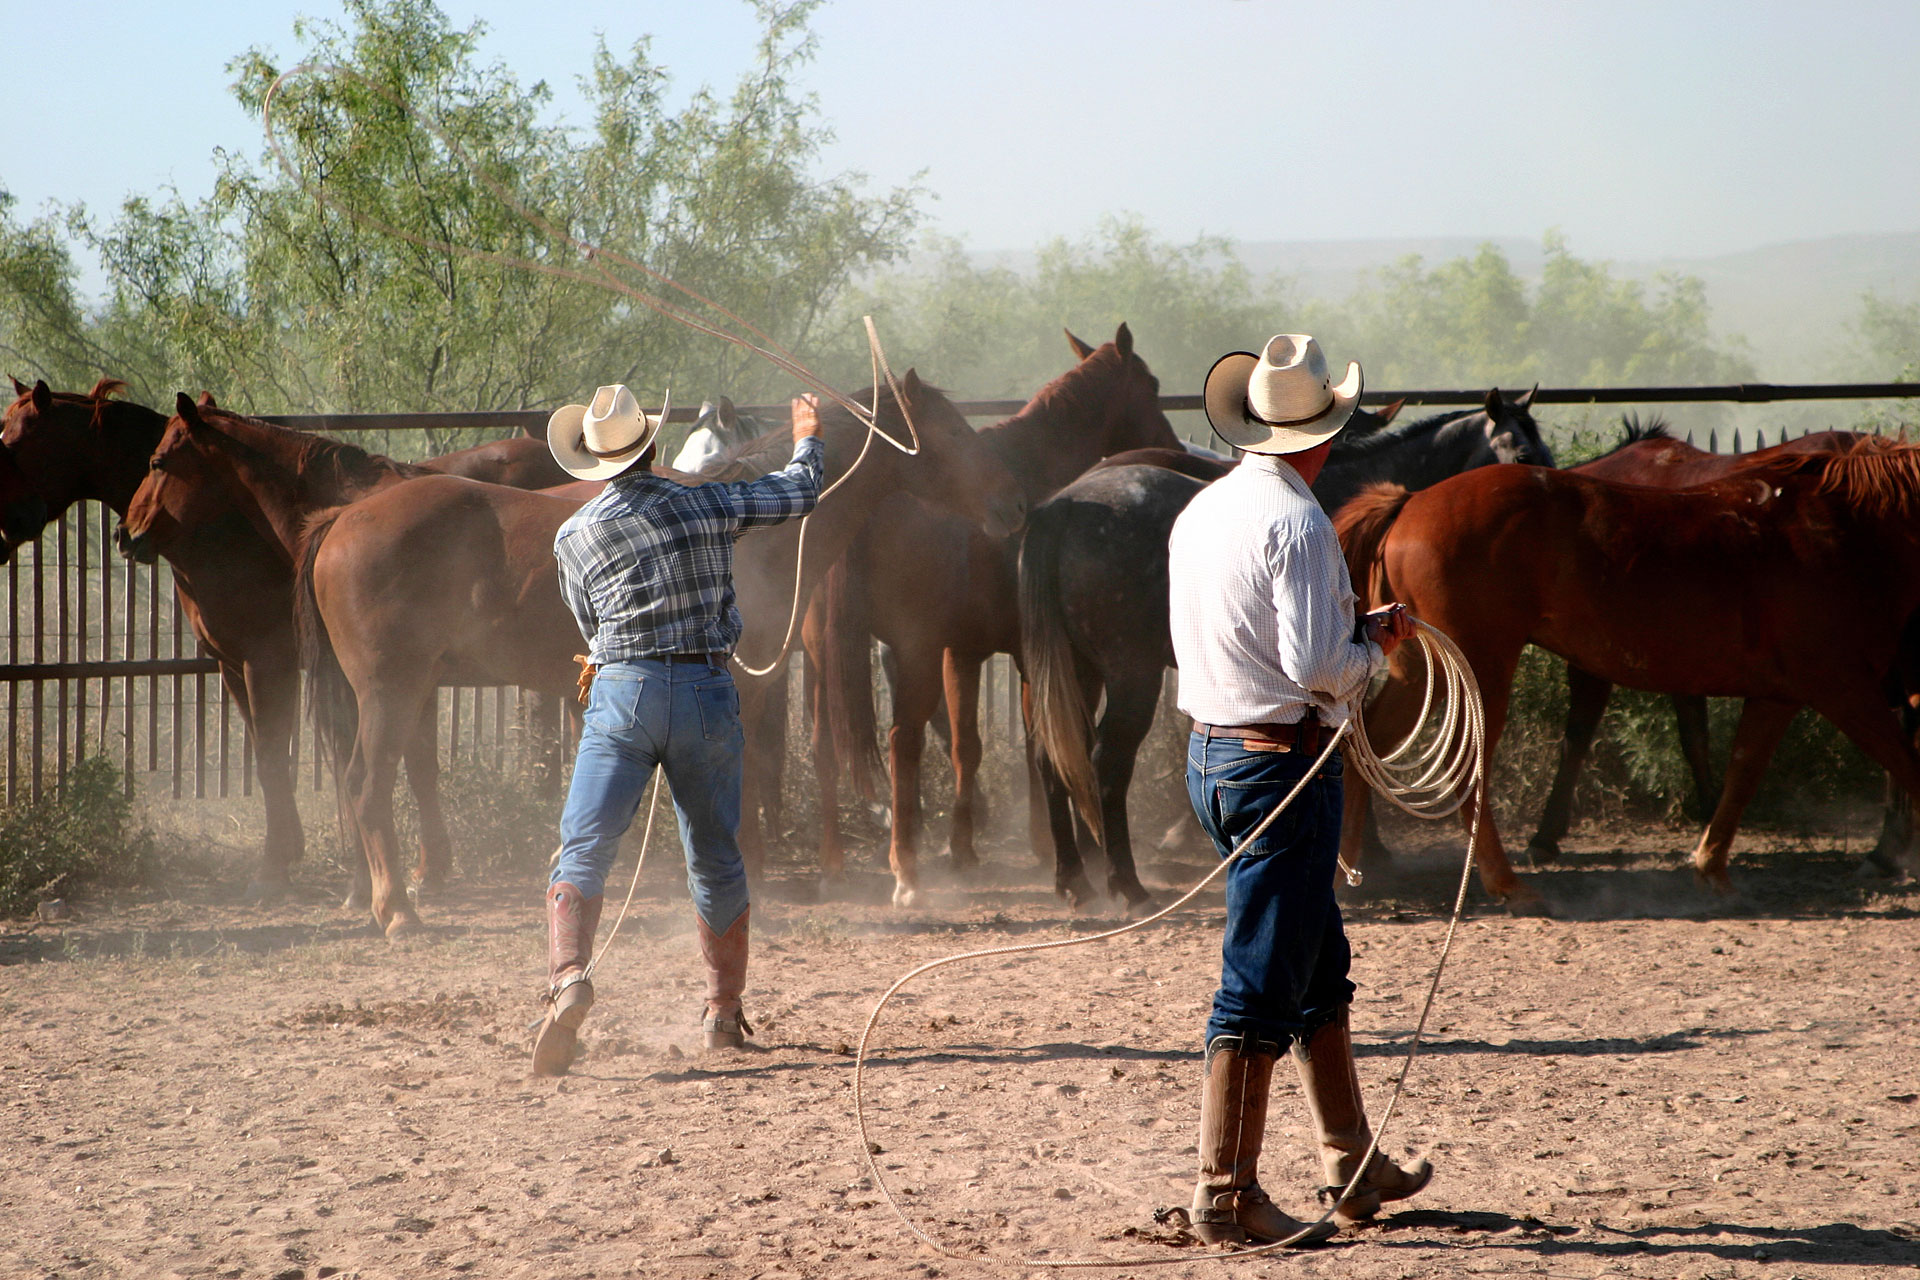 Ride with cowboys